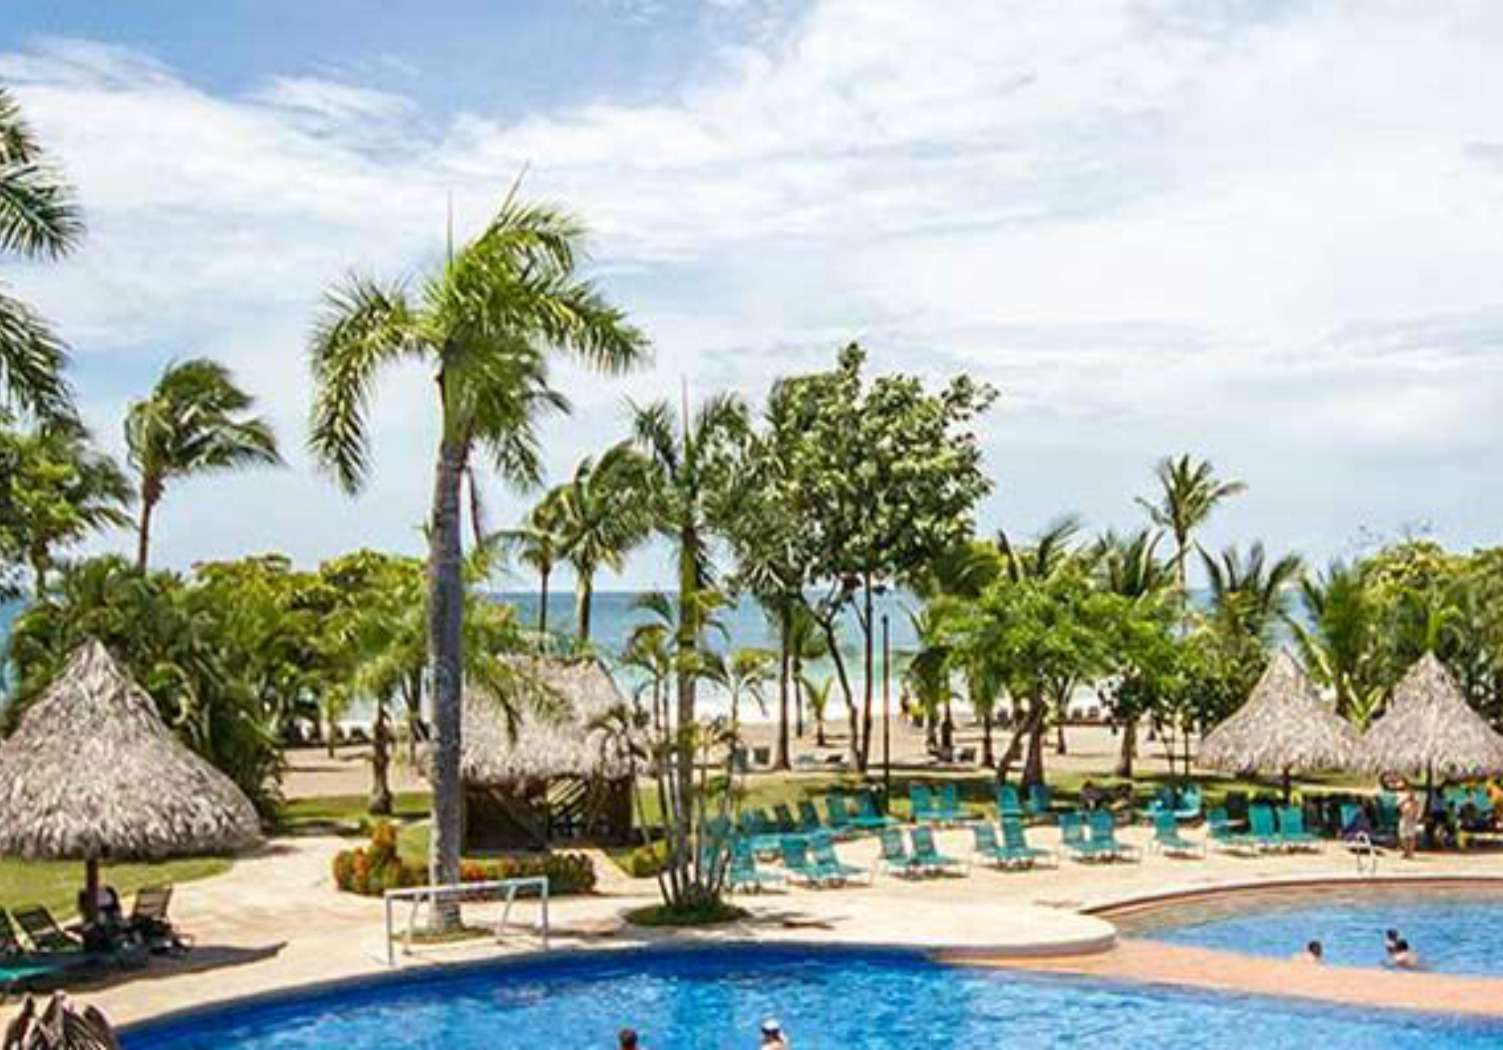 9 Best Resorts For Families In Costa Rica